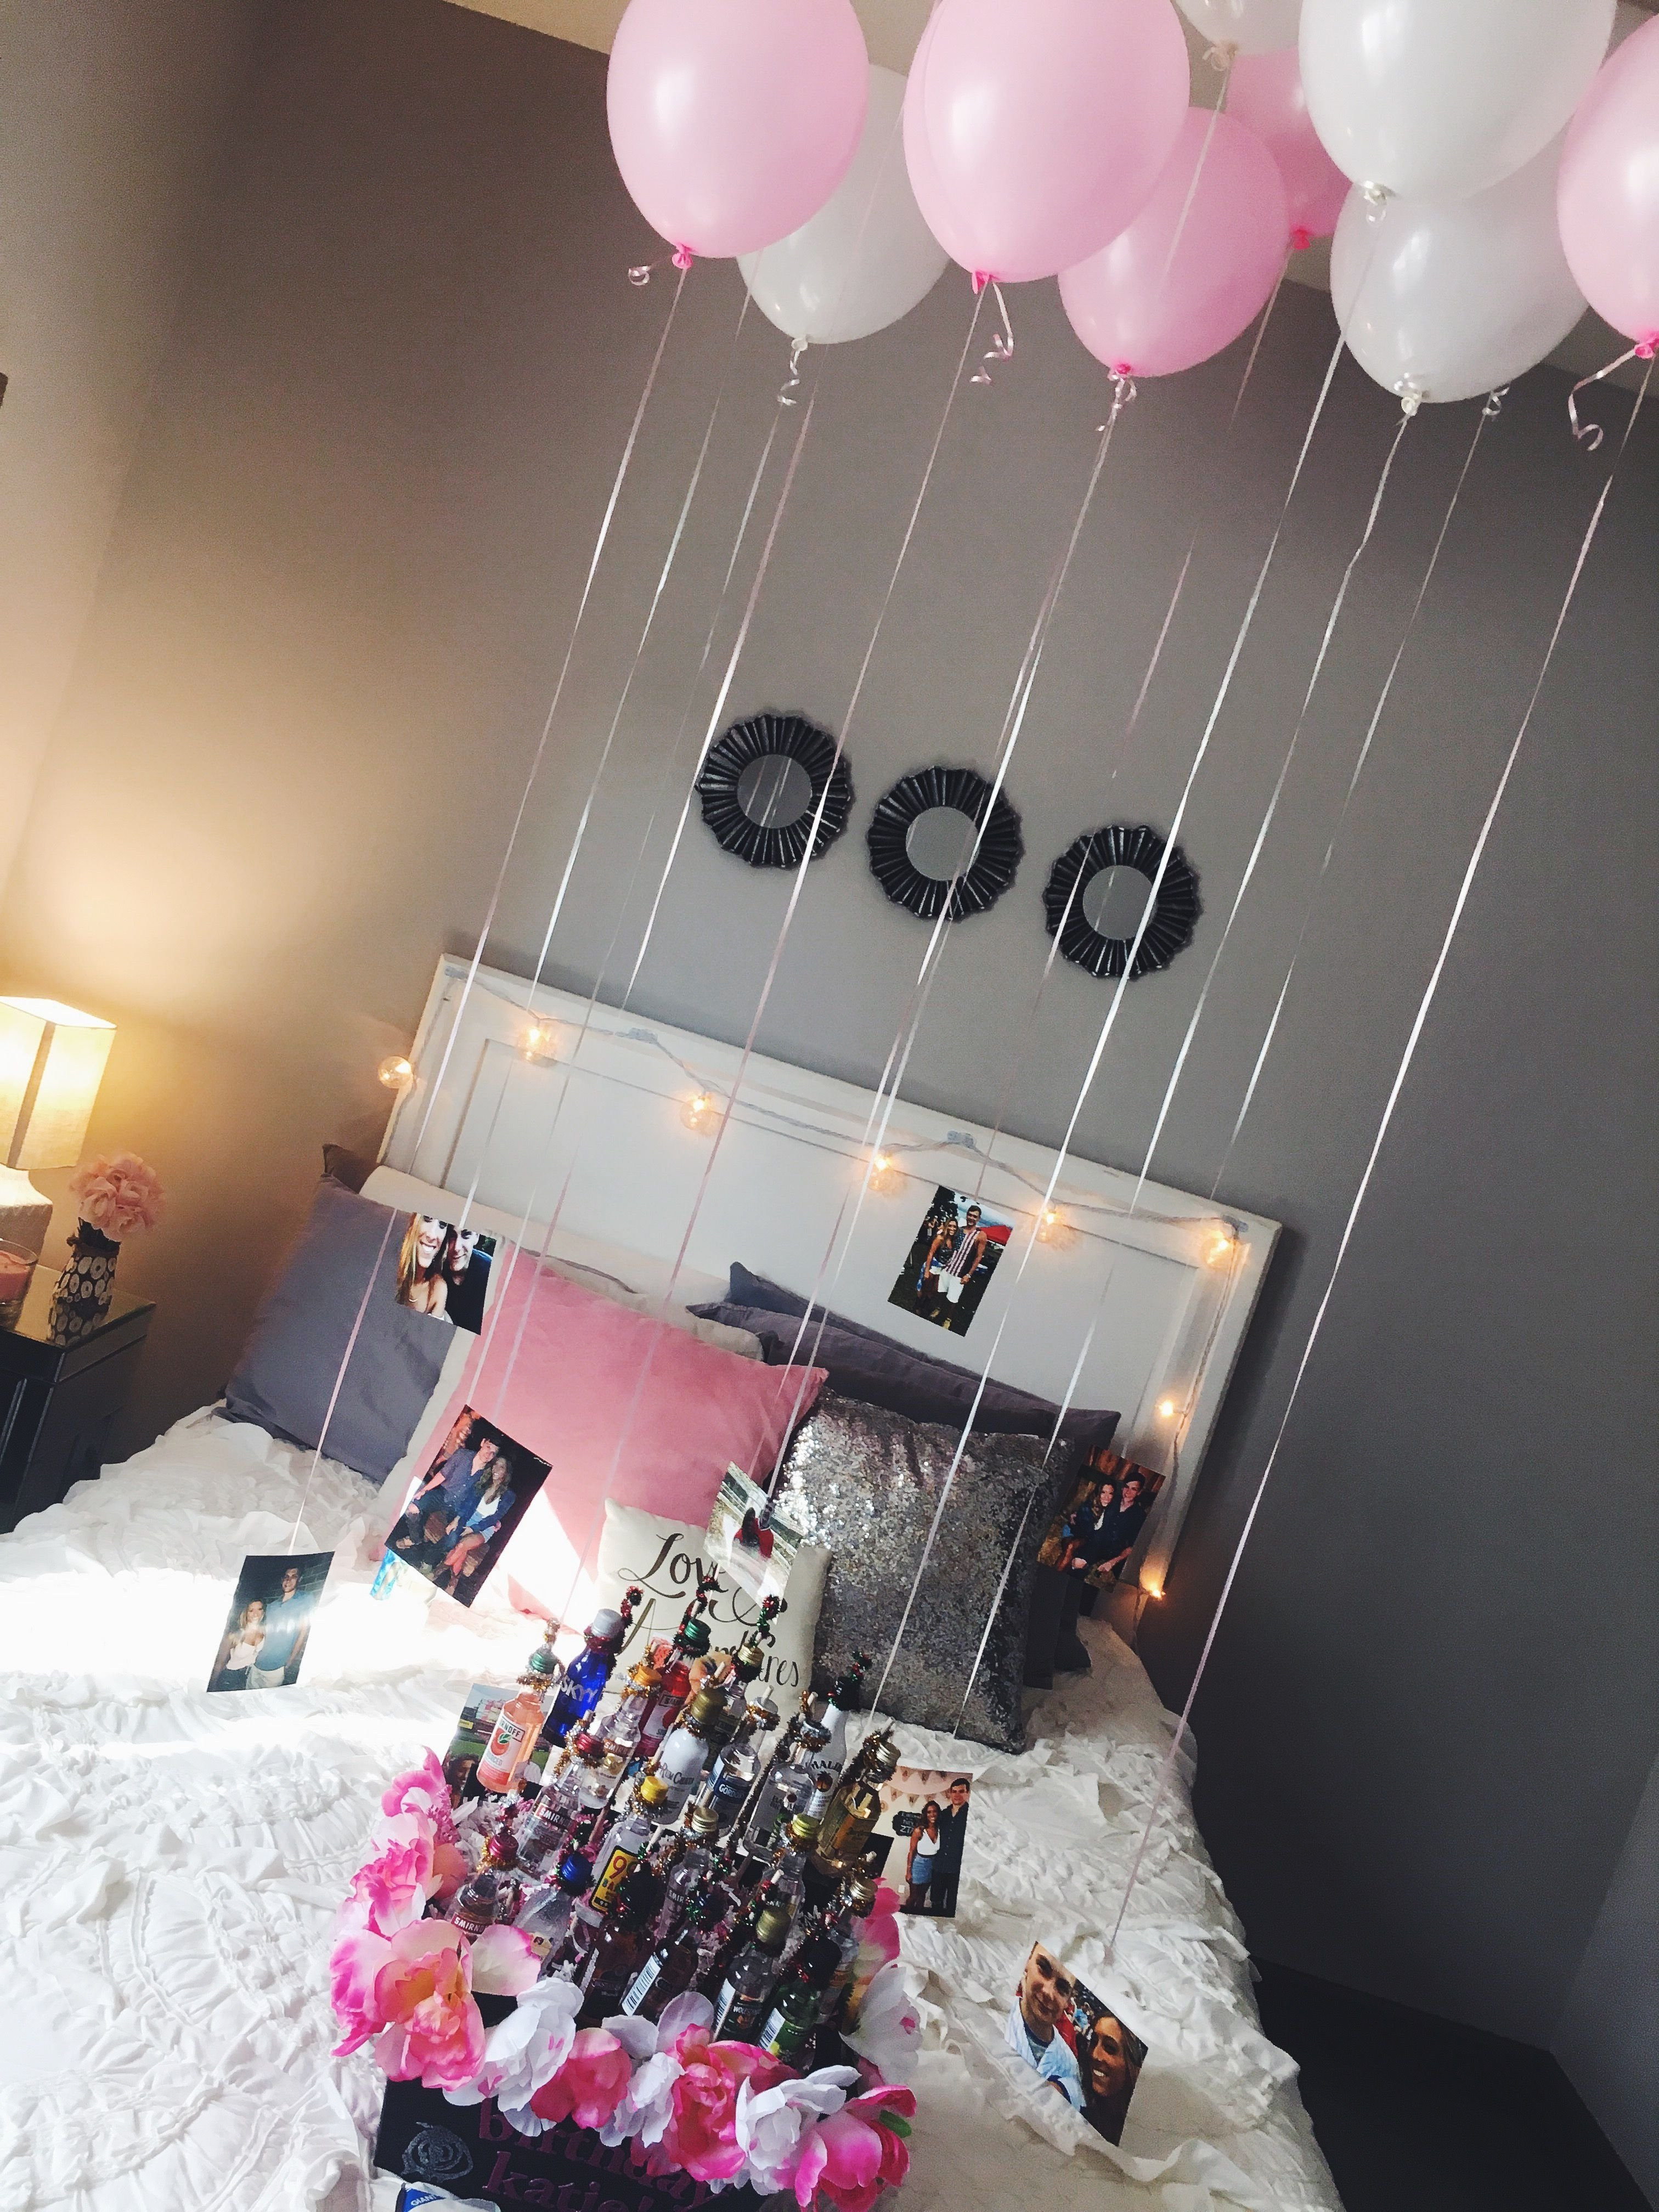 10 Perfect Creative Birthday Ideas For Girlfriend easy and cute decorations for a friend or girlfriends 21st birthday 1 2020